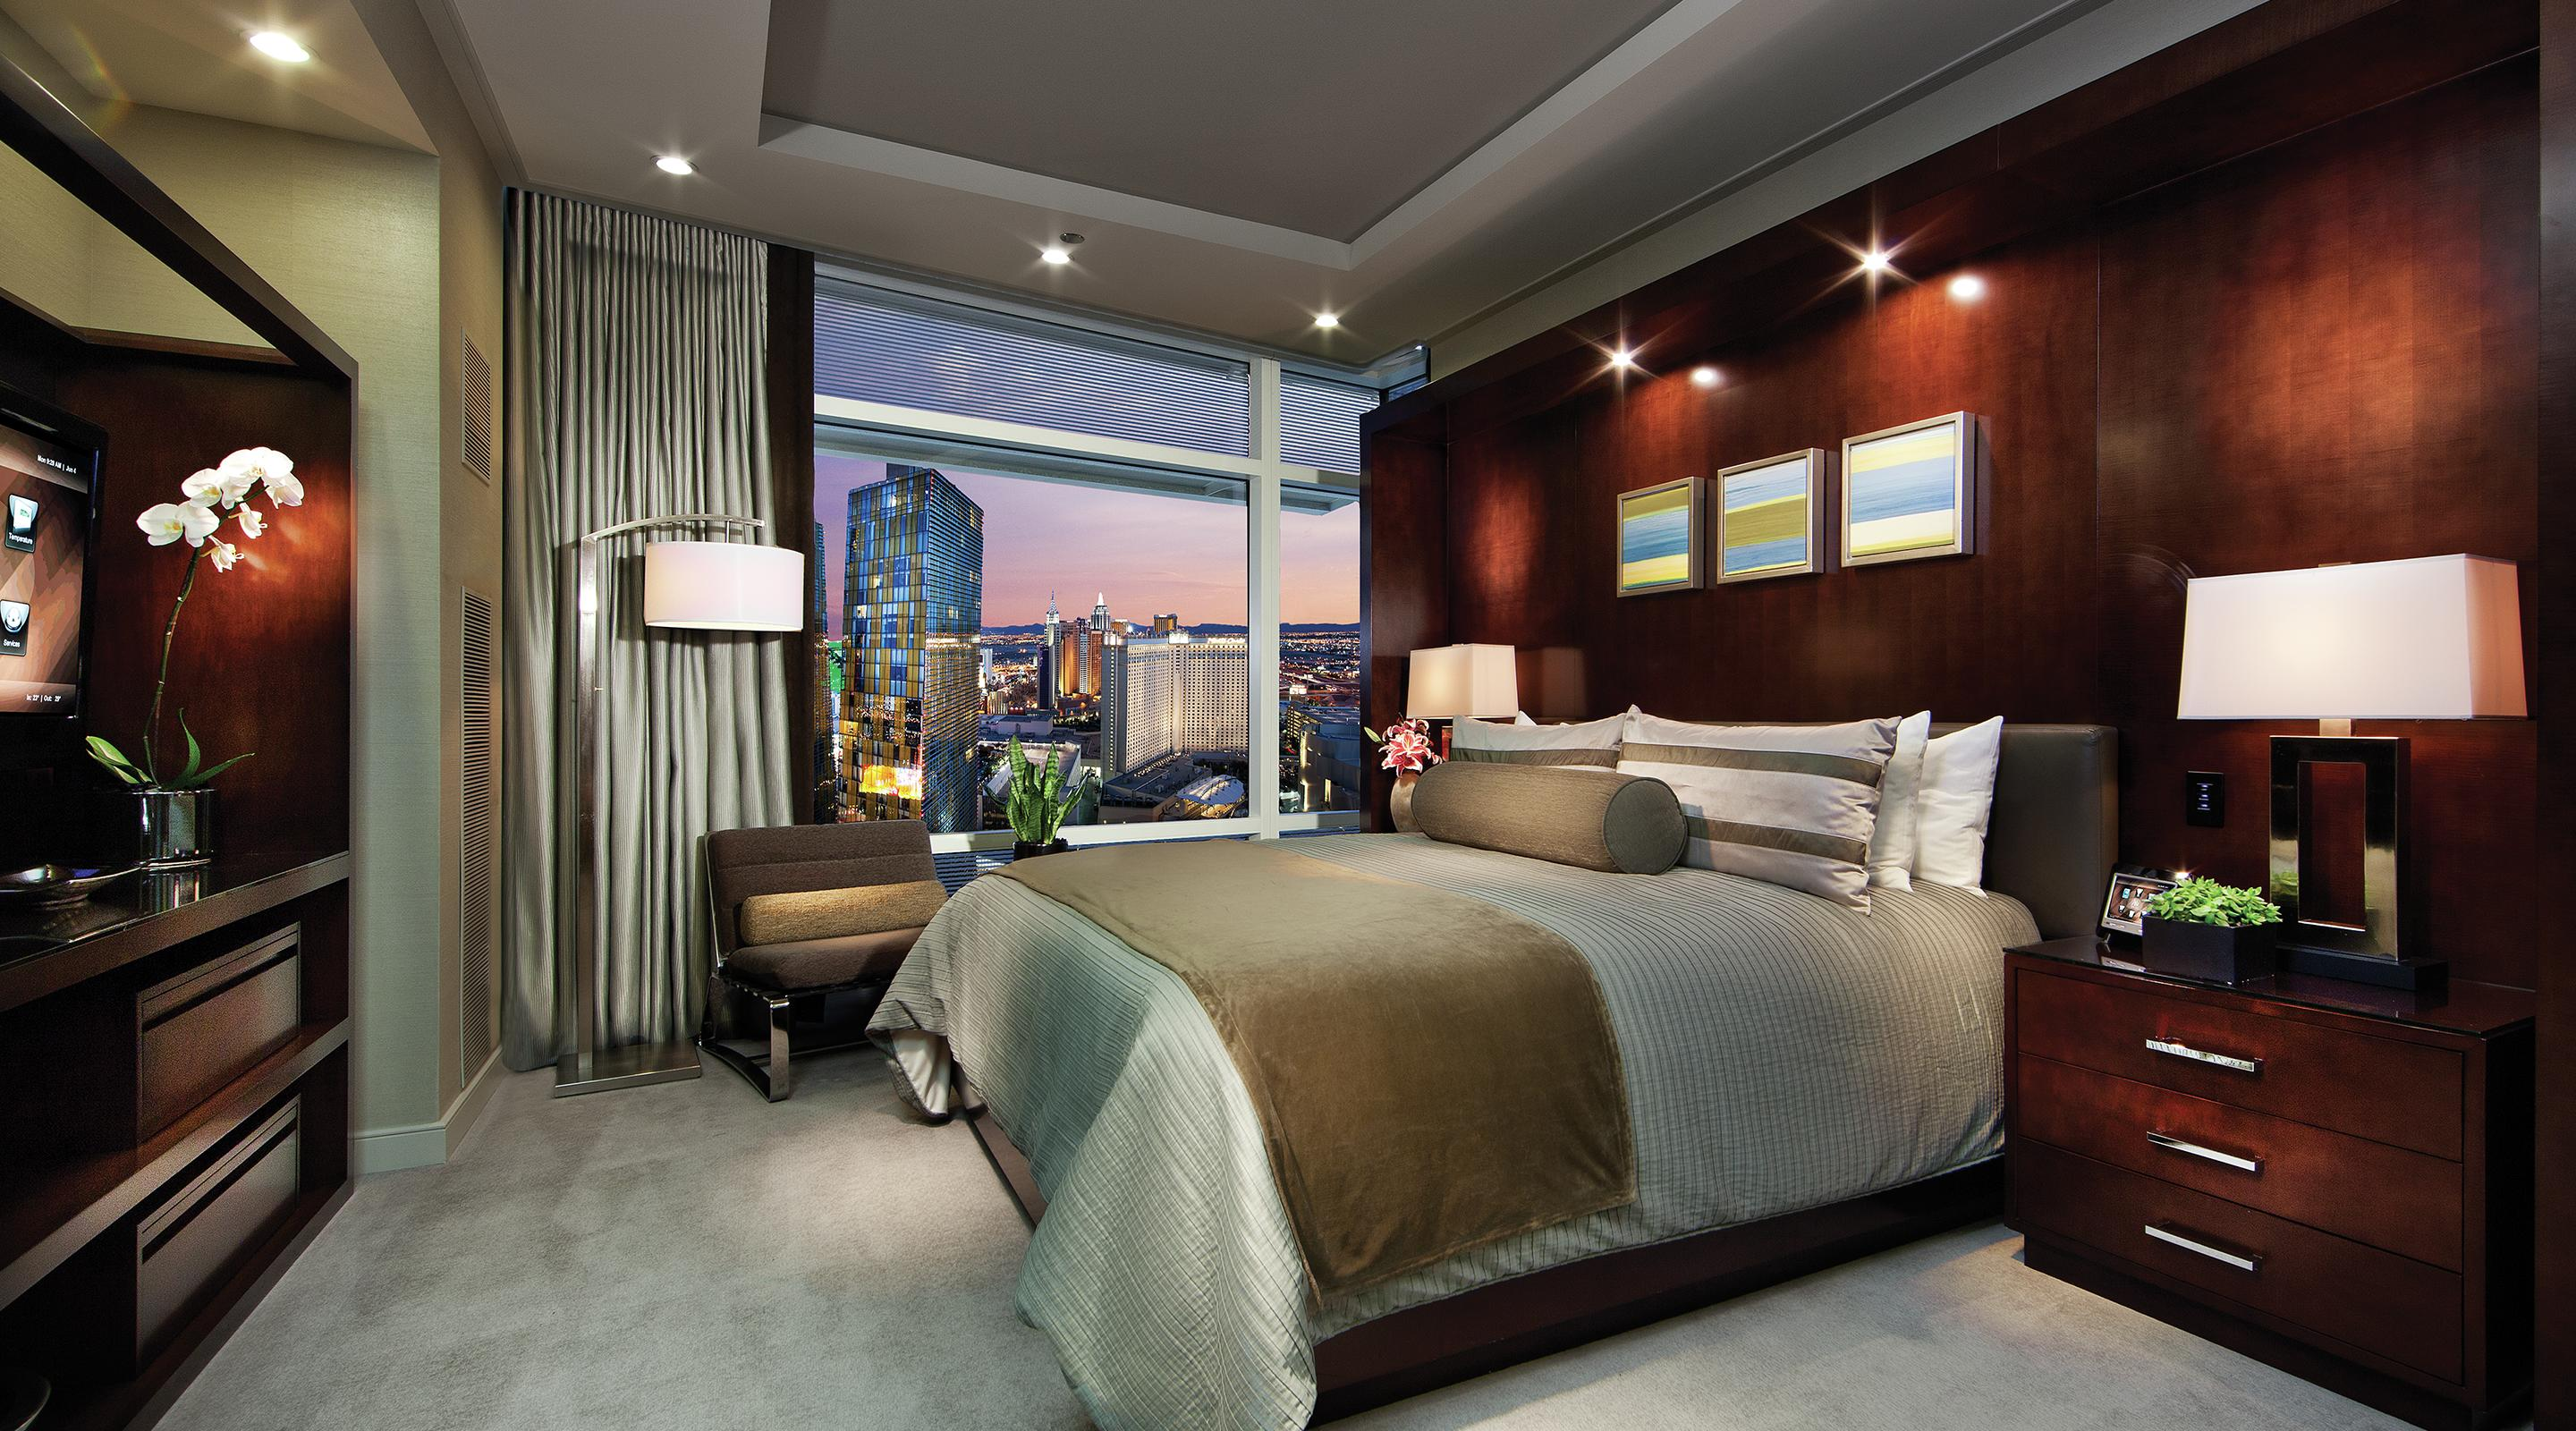 elara 2 bedroom suite.  Two Bedroom Penthouse Suite in Las Vegas ARIA Resort Casino